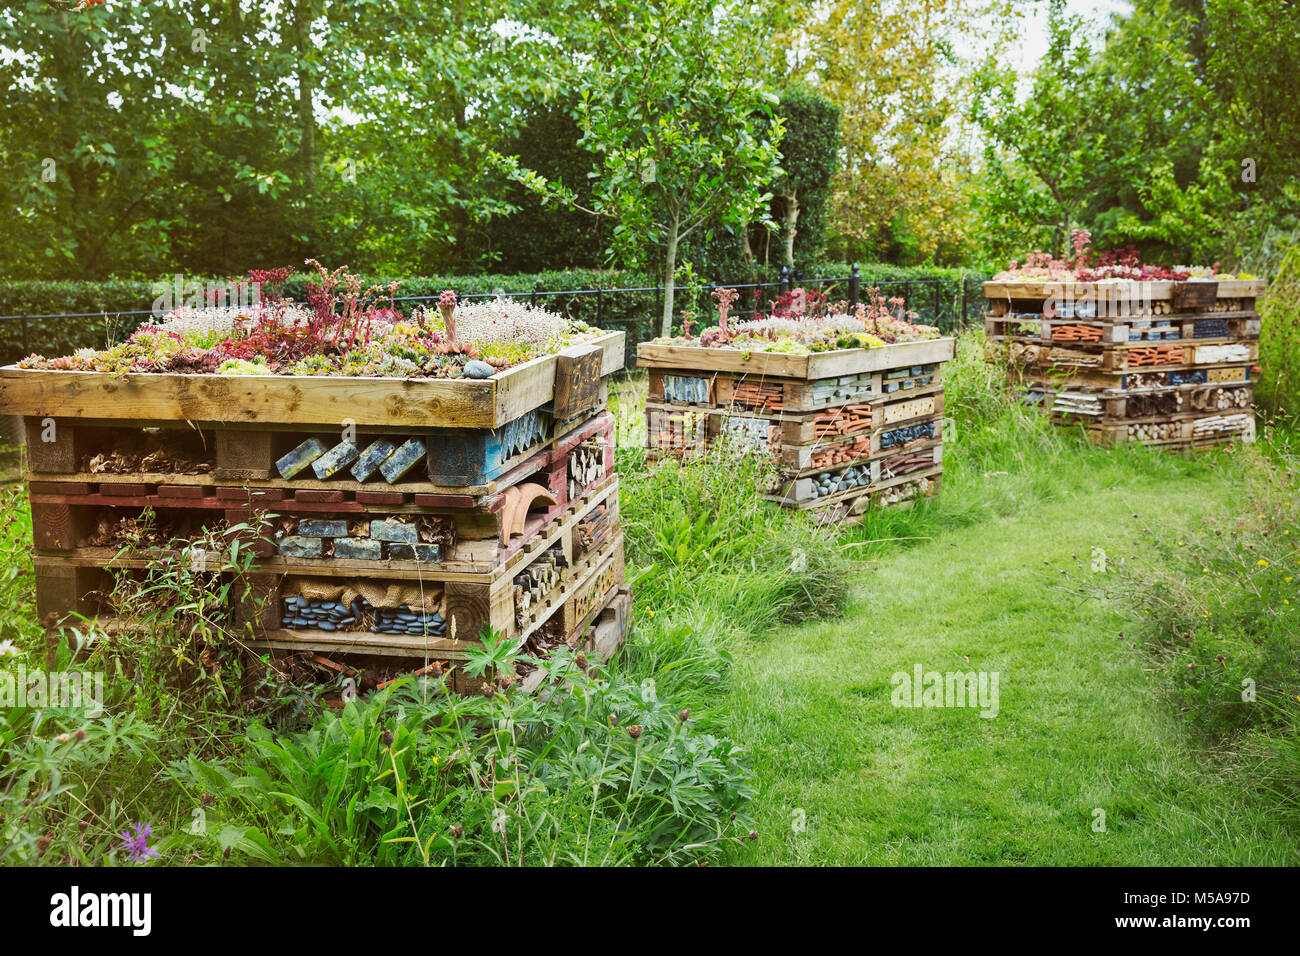 Three large bug houses with several layers of different materials in a garden. - Stock Image